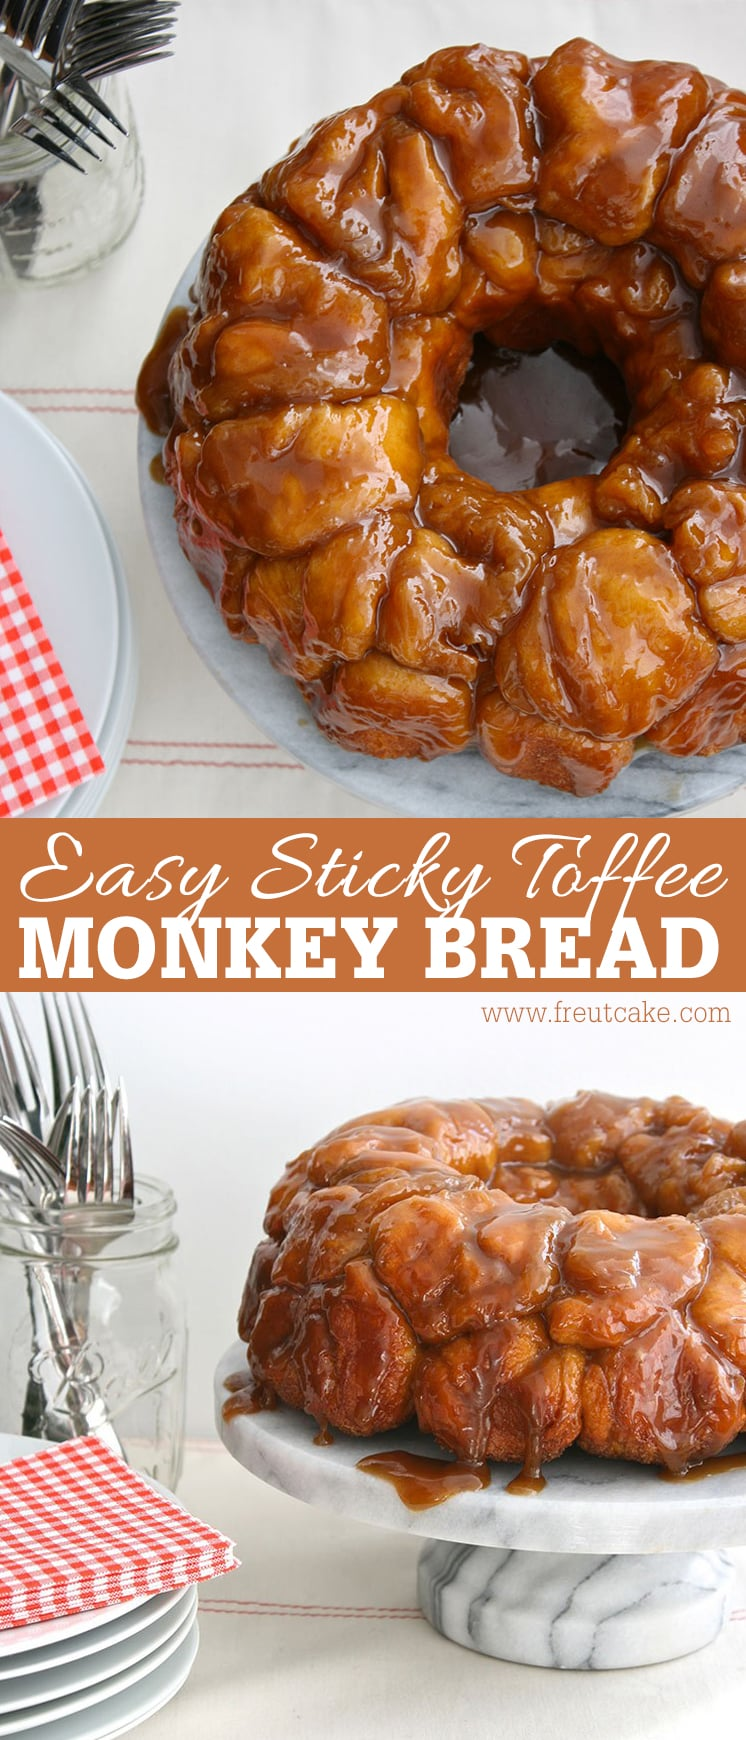 Easy 5 Ingredient Sticky Toffee Monkey Bread